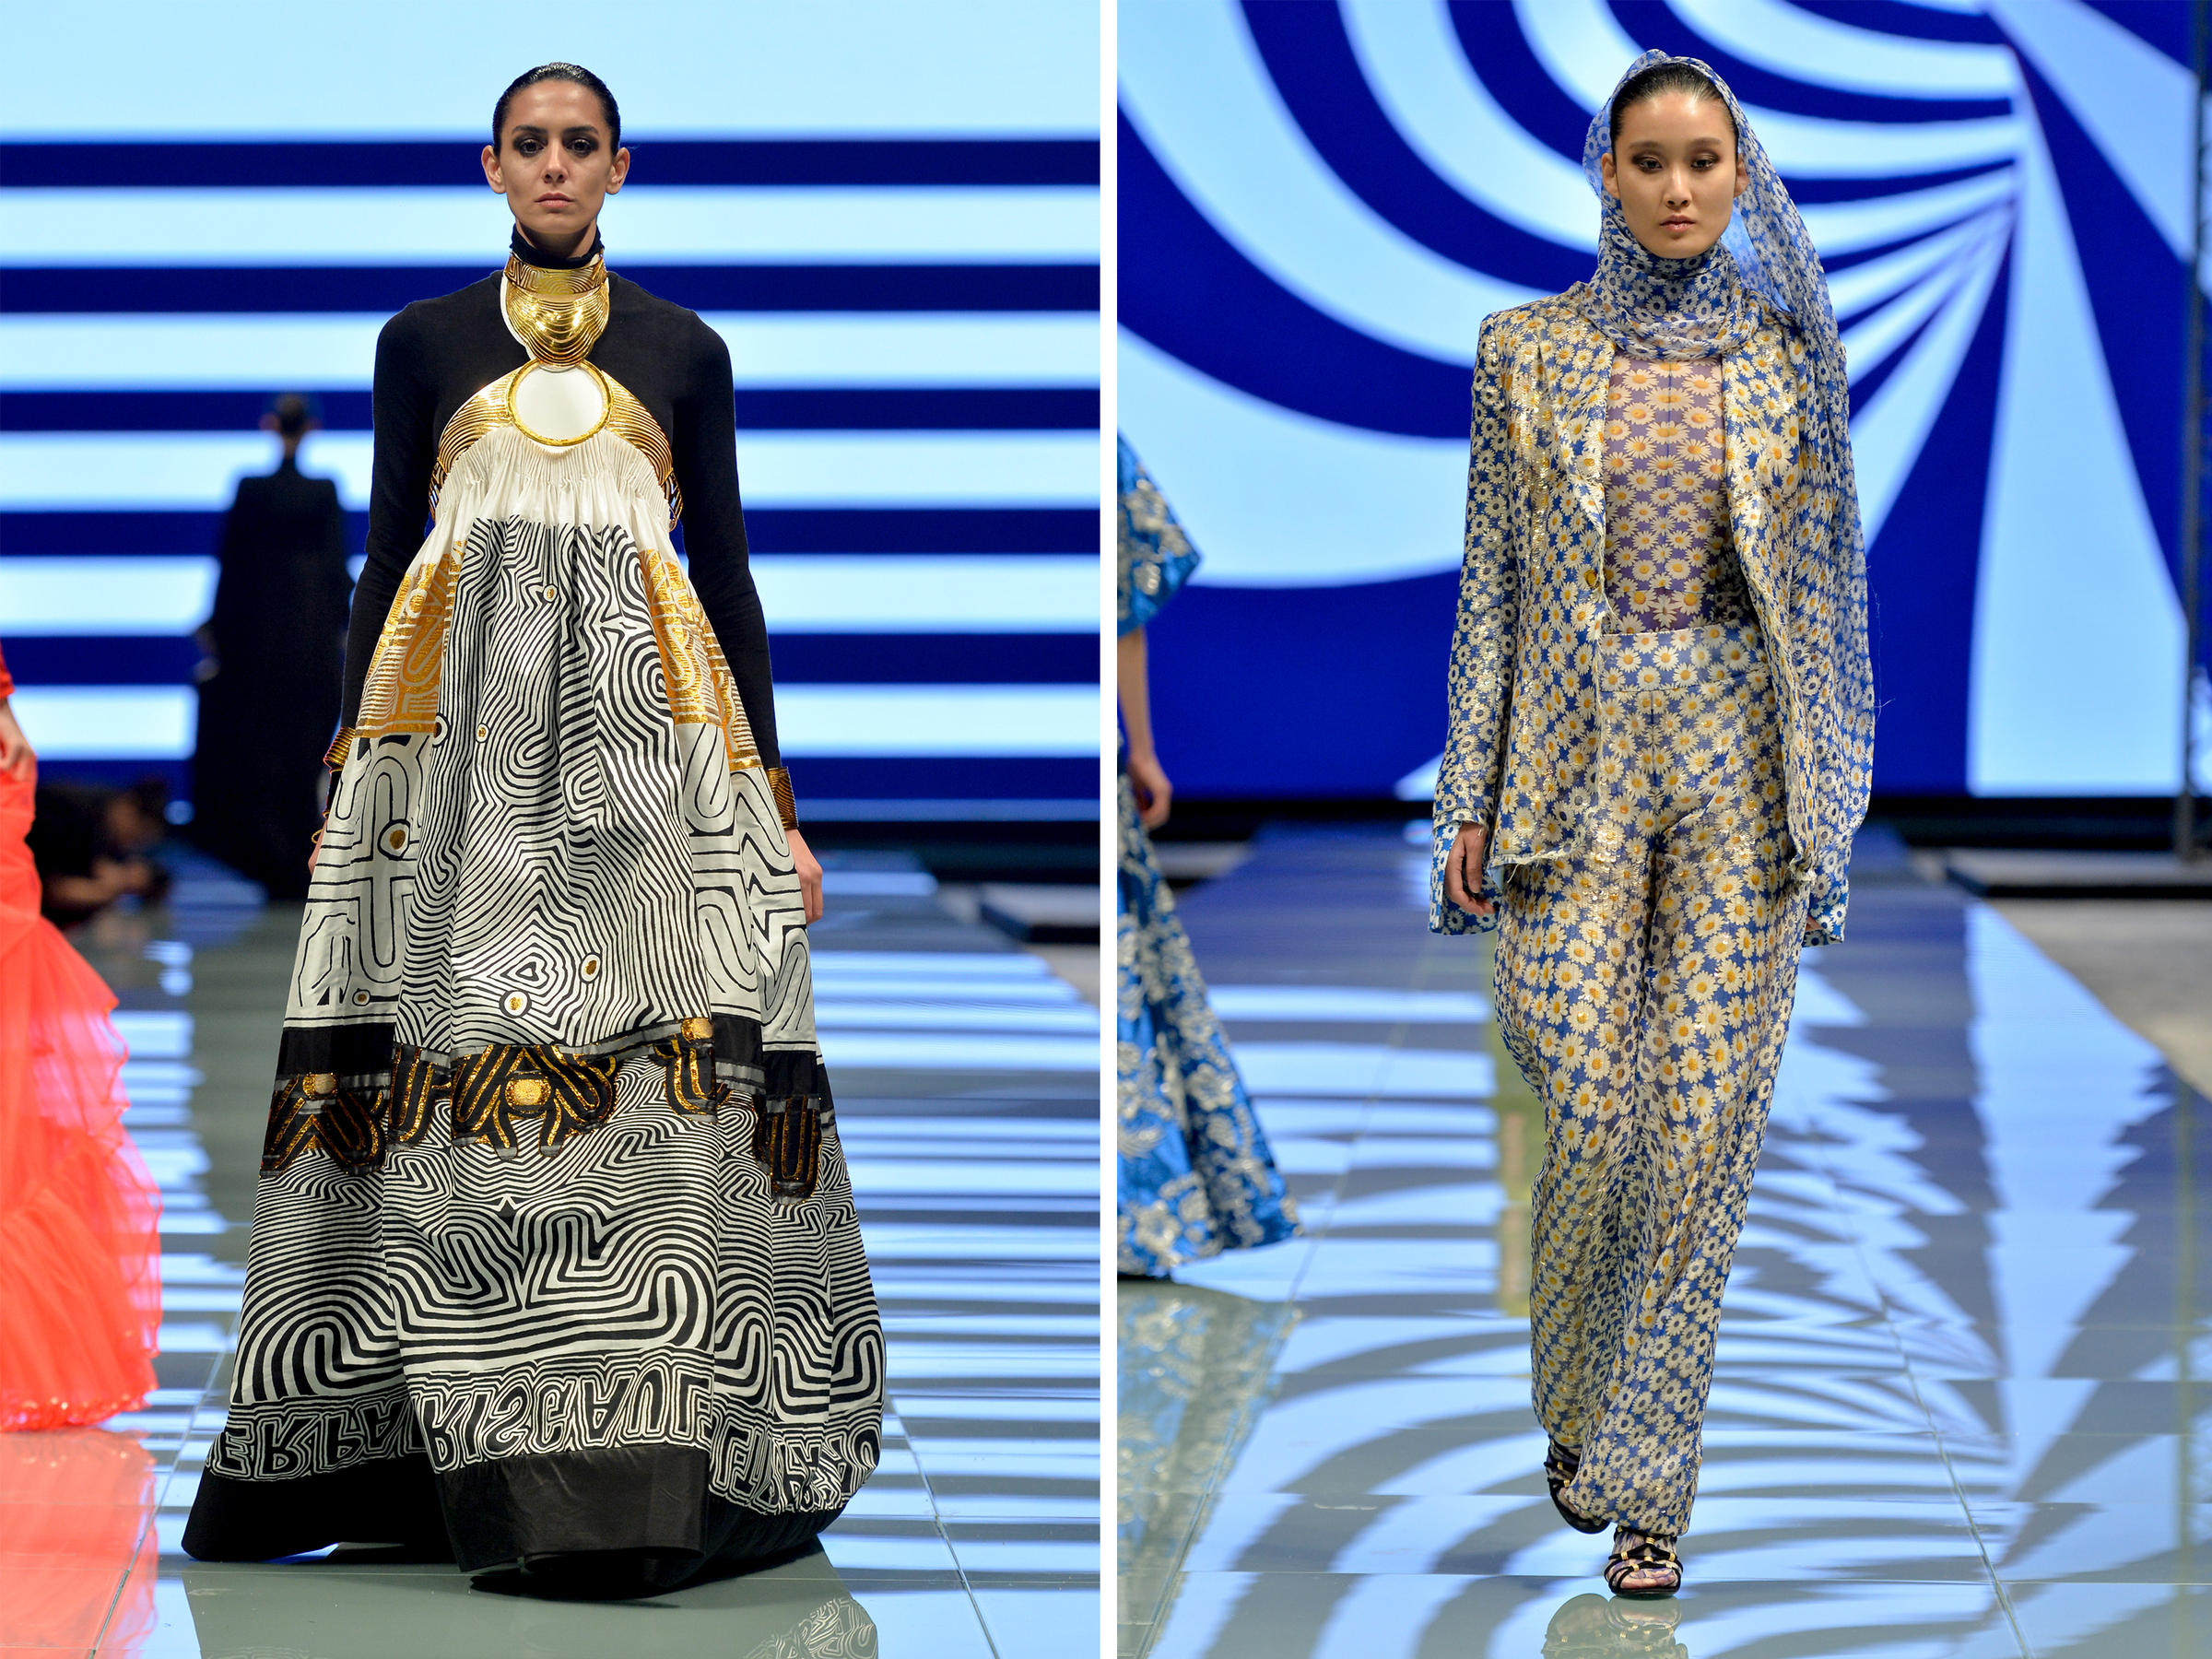 Saudi Arabia s First Arab Fashion Week Kicks Off  Beyond Fashionably     Jean Paul Gaultier was one of the big designers to participate in Saudi  Arabia s first Arab Fashion Week in Riyadh